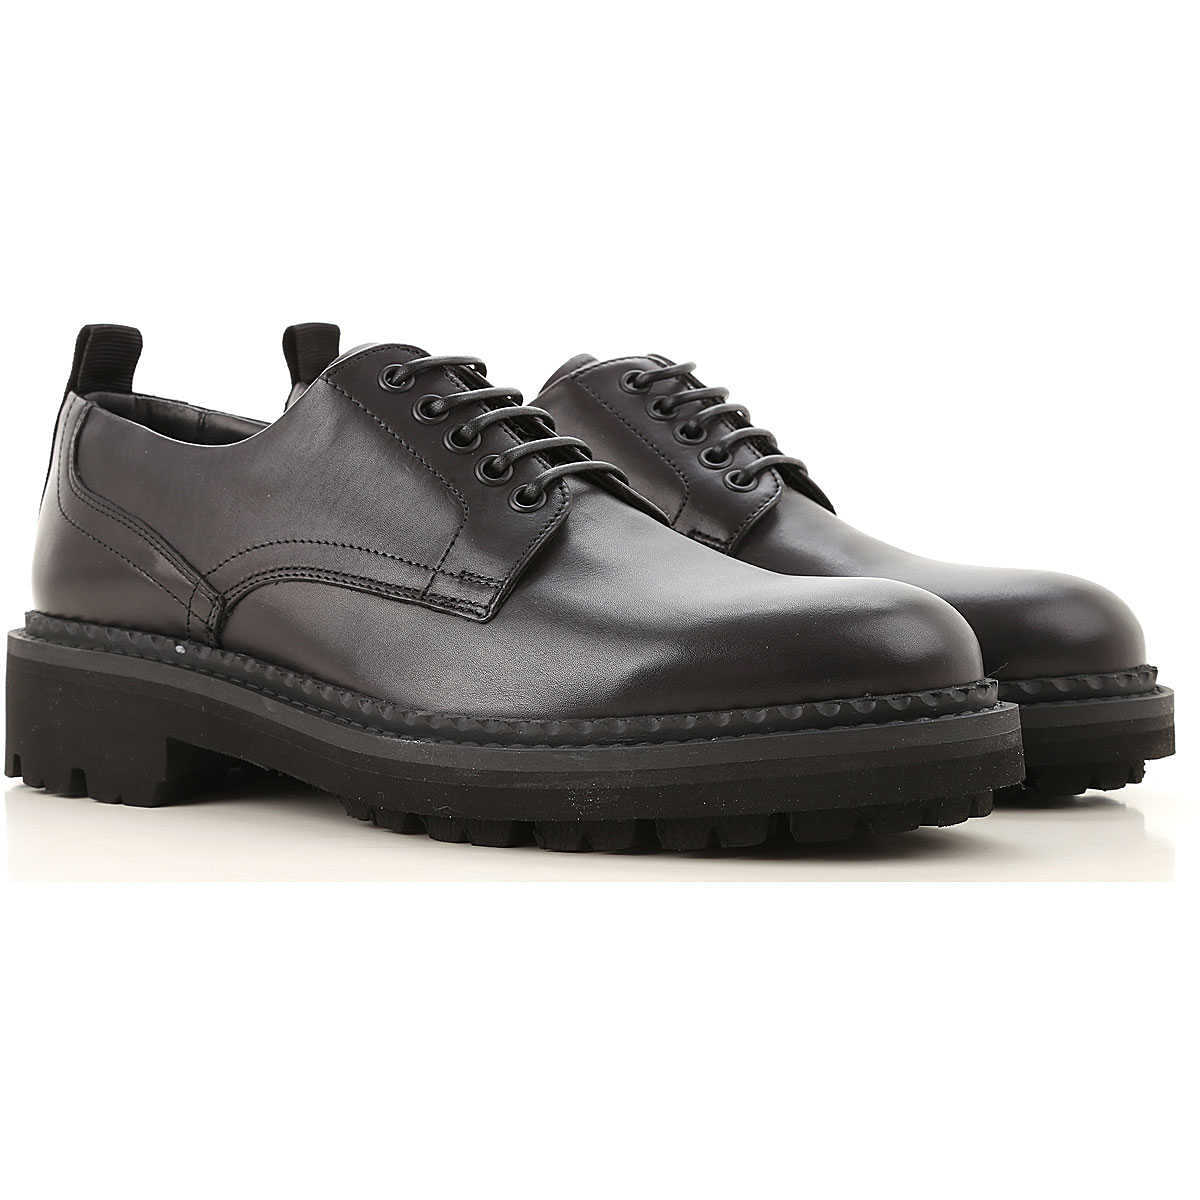 Emporio Armani Lace Up Shoes for Men Oxfords 10 10.5 11 8 8.5 Derbies and Brogues UK - GOOFASH